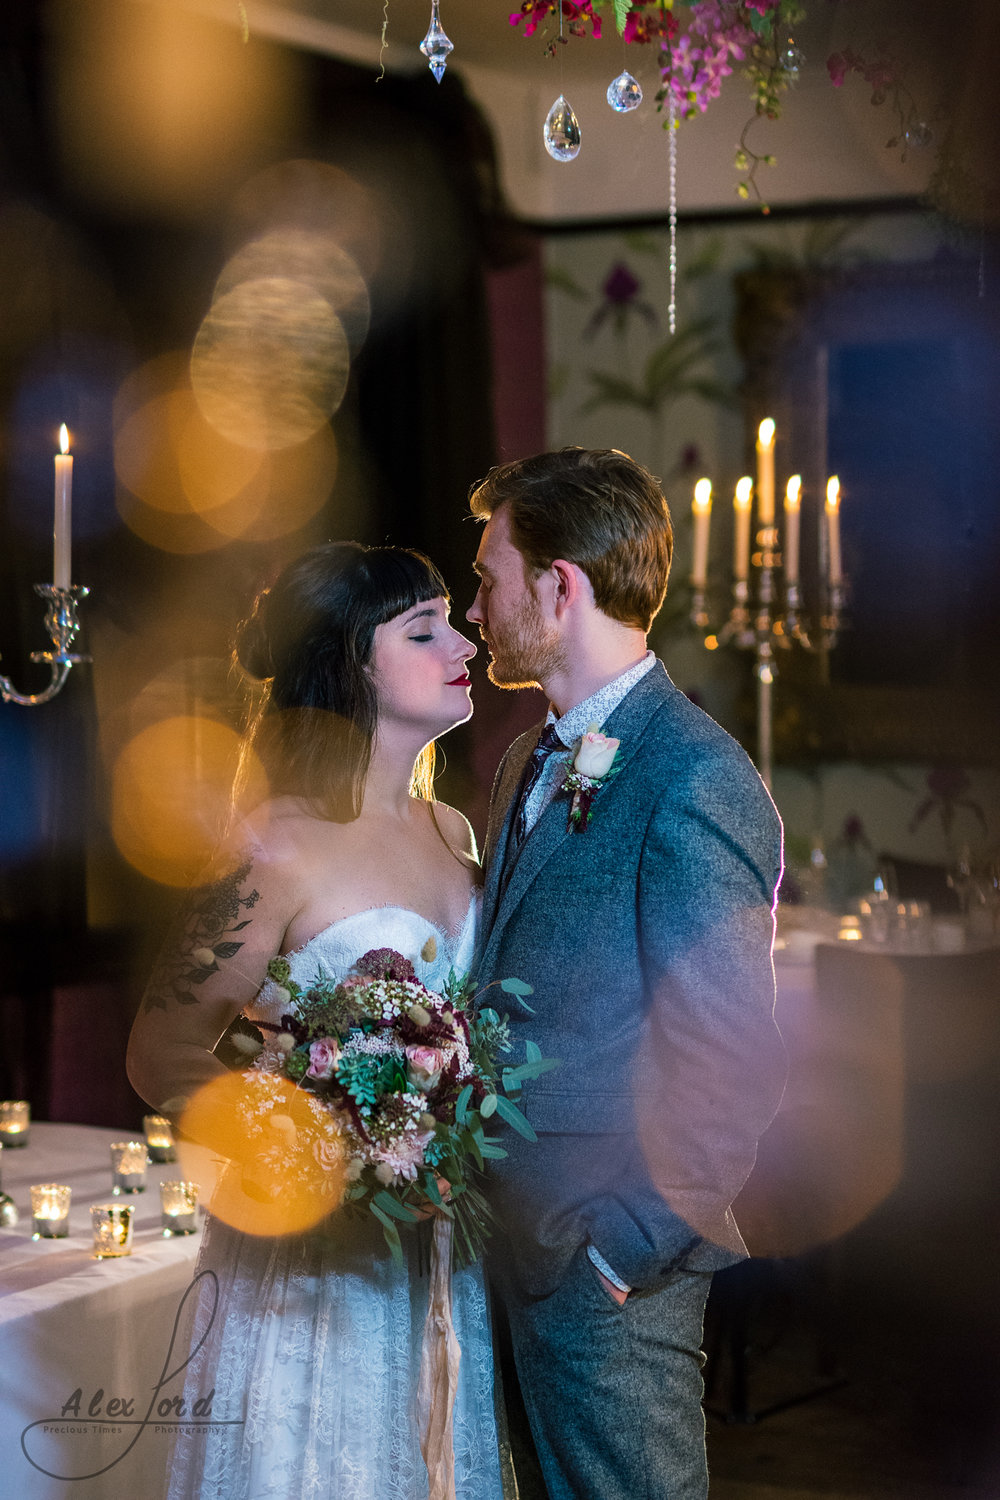 stunning bride and groom take a quiet moment together in their wedding venue